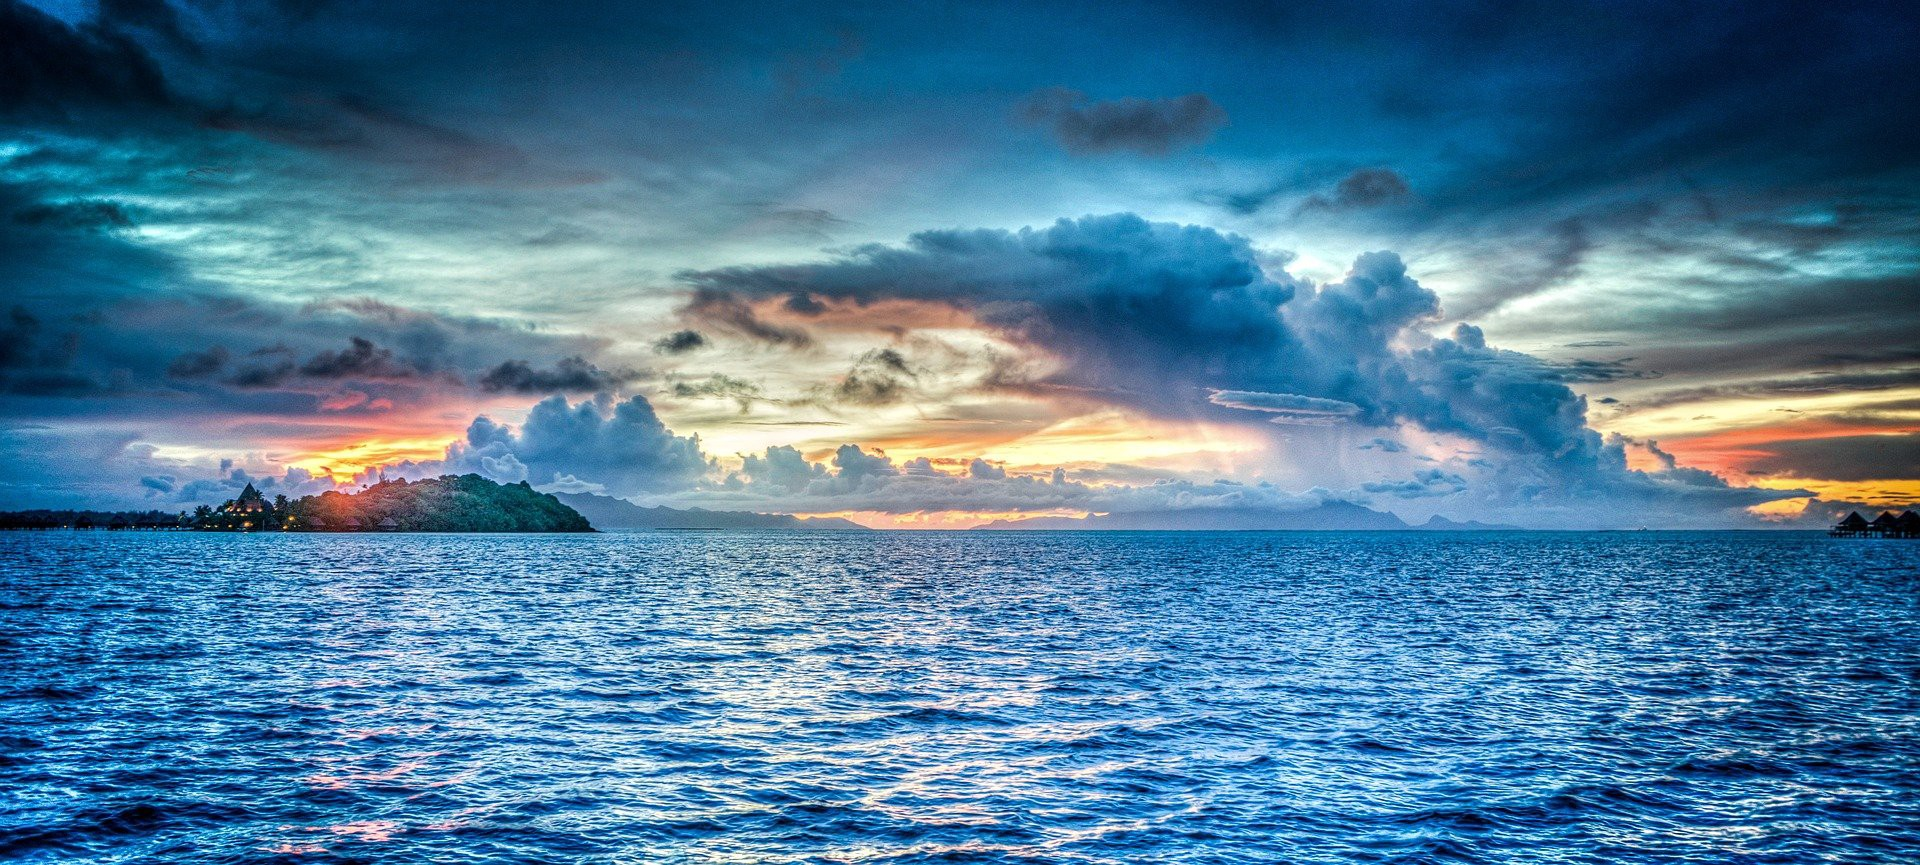 Blue sky with a hazy sunset above glistening coral blue sea